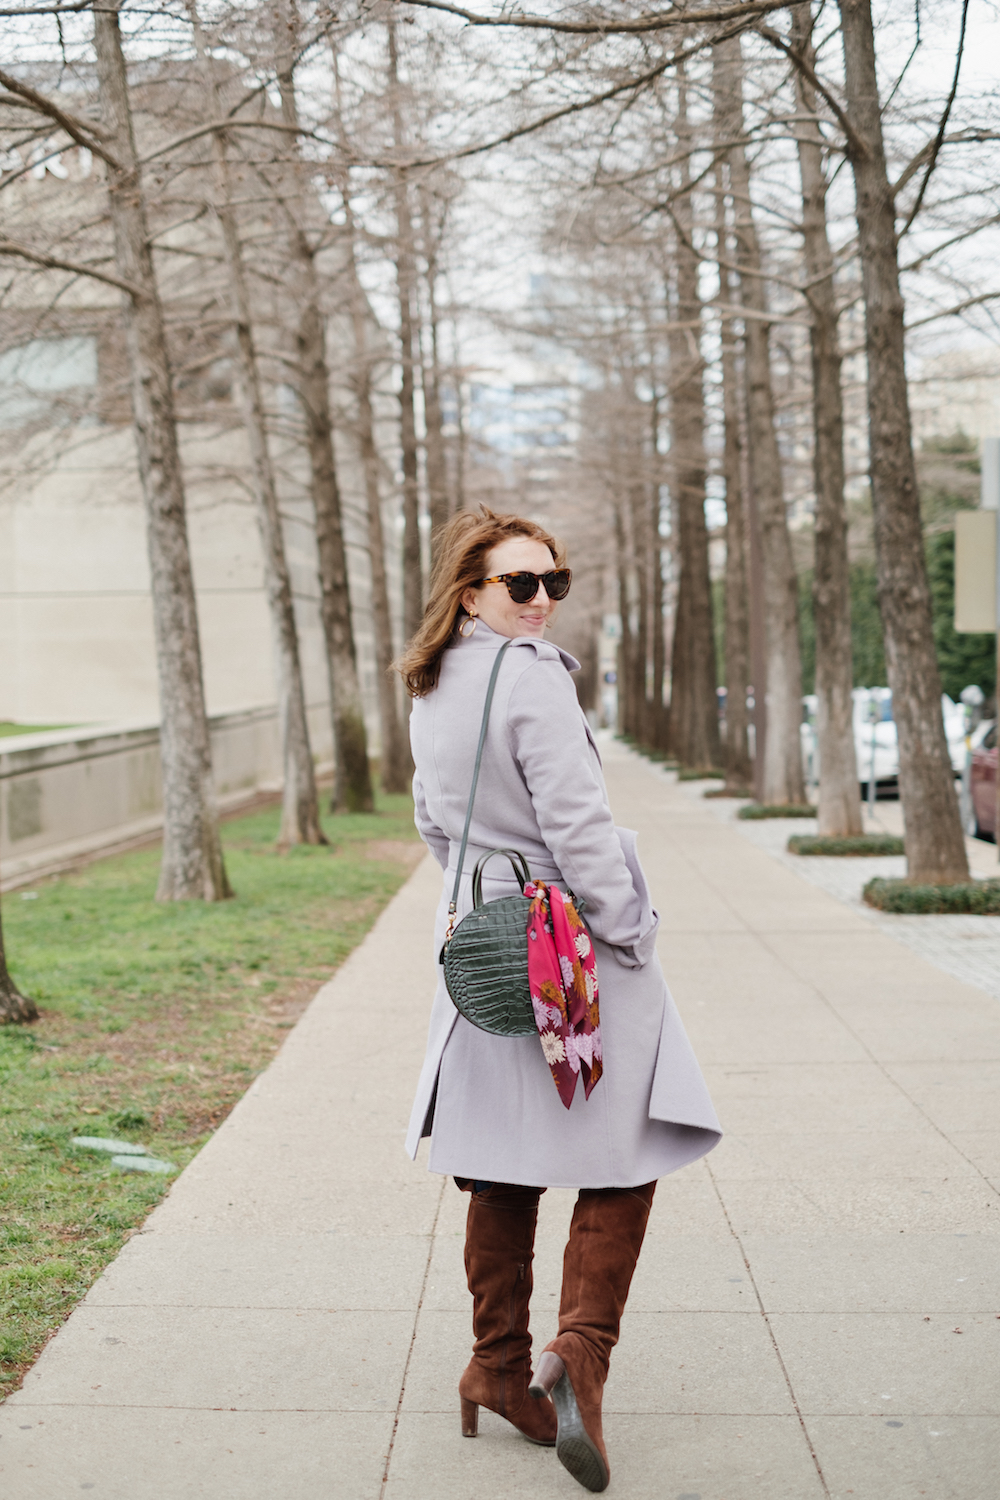 Fun Winter Activities for Adults | What to Do on a Cold Saturday Night with Friends | Badgley Mishka Coat | How to Style a Colorful Coat via Lifestyle Blogger, Glitter & Spice